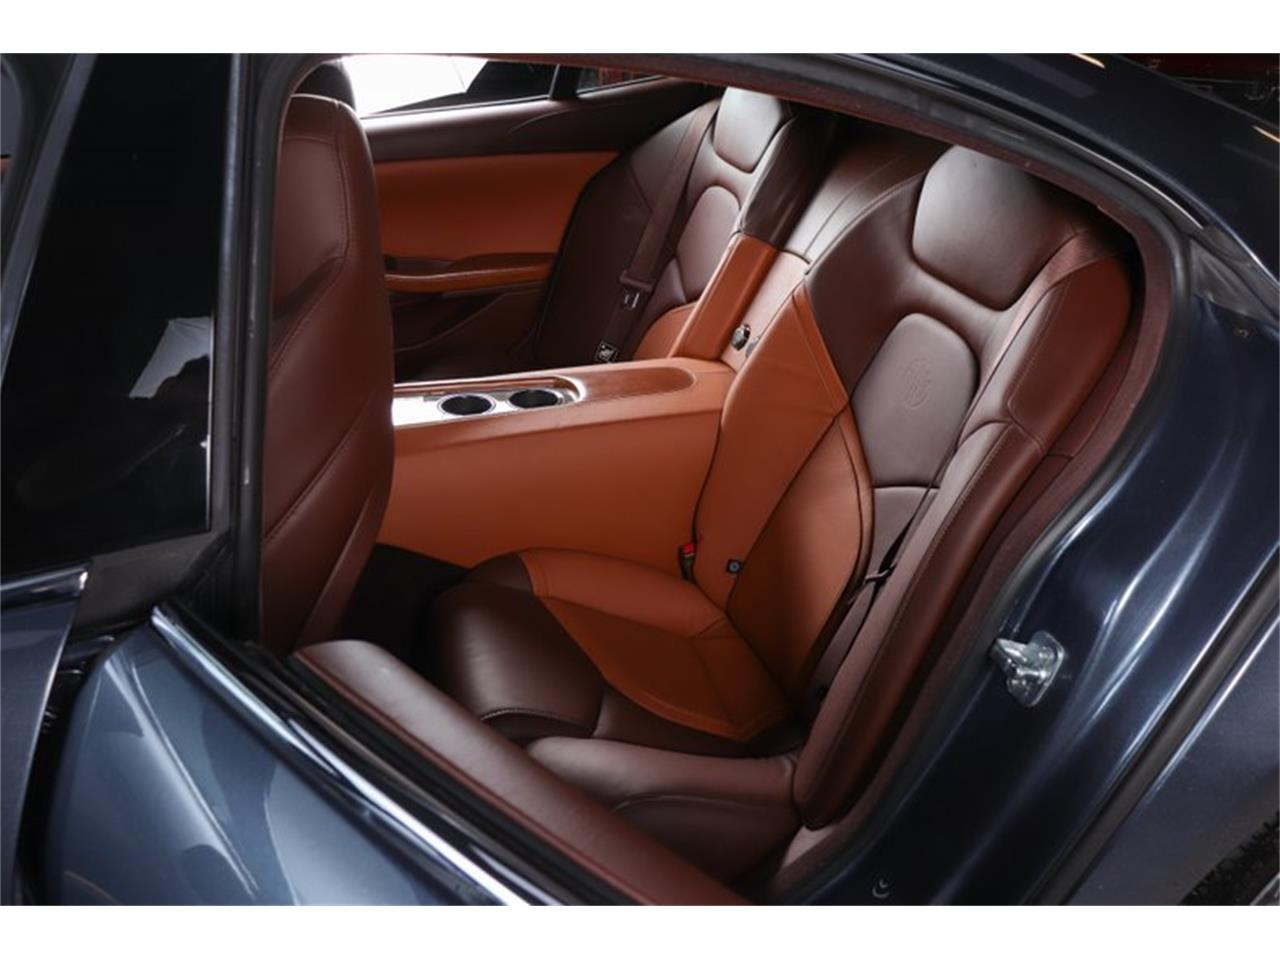 2012 Fisker Karma for sale in New Hyde Park, NY – photo 32